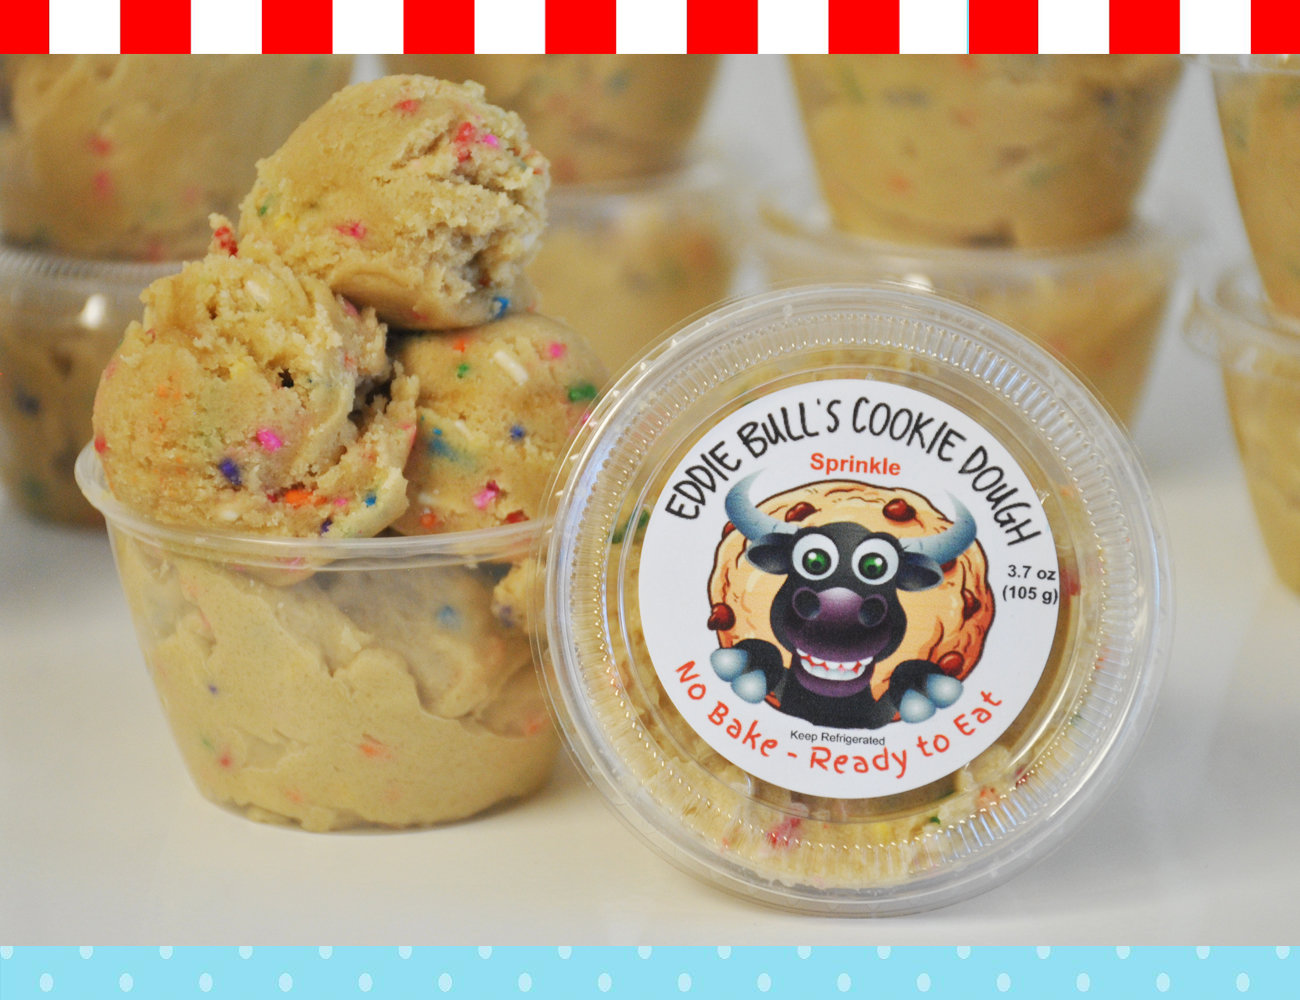 4 Pack Eddie Bulls Cookie Dough (4 - 8 ounce containers)